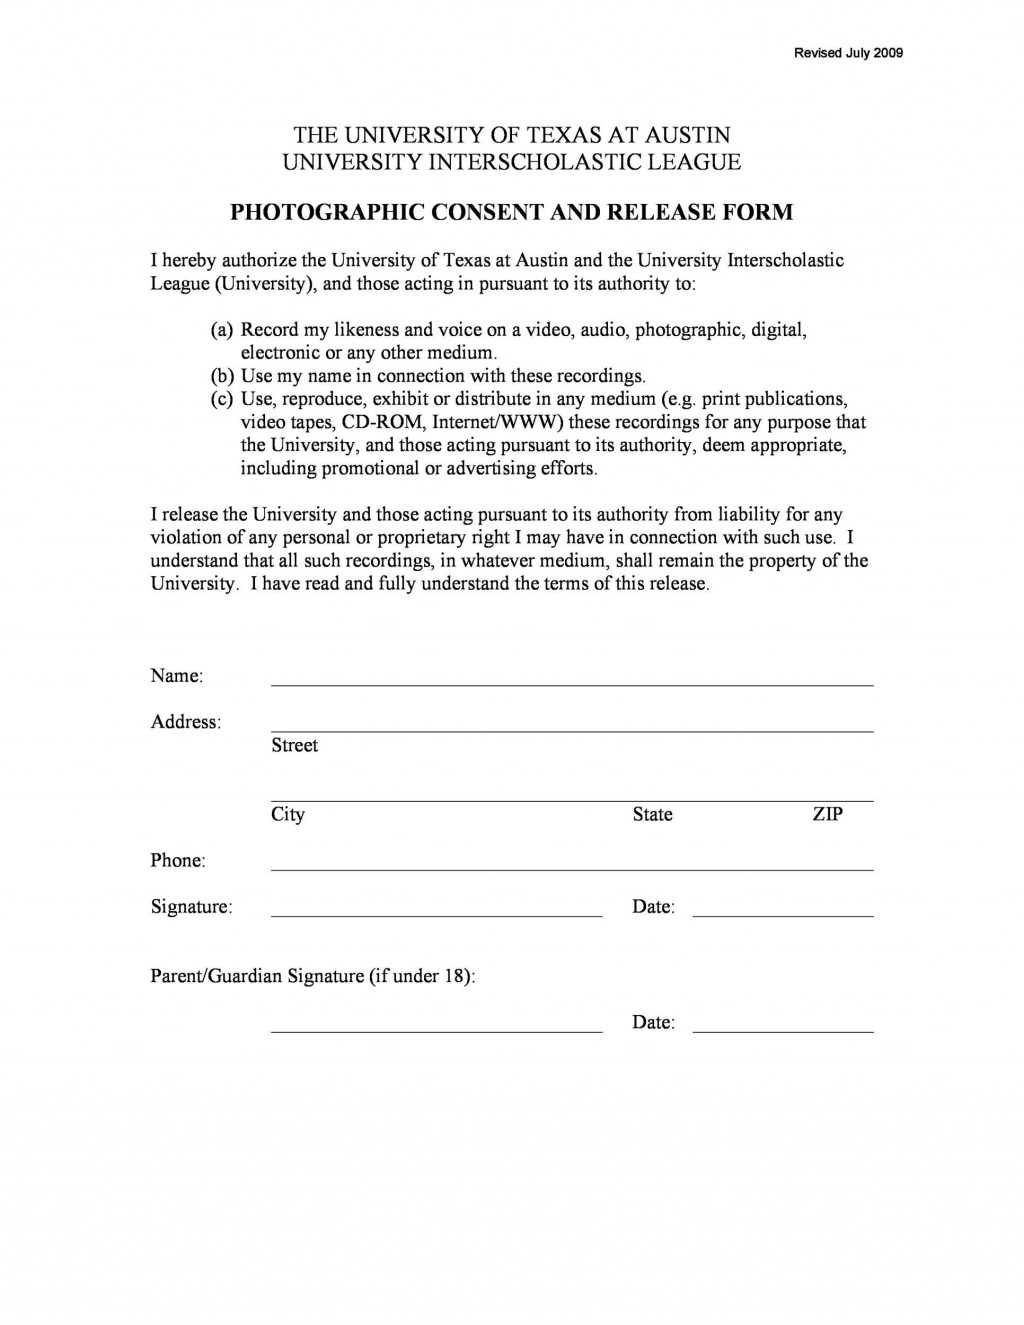 006 Incredible Photography Release Form Template High Def  Image Australia CanadaLarge